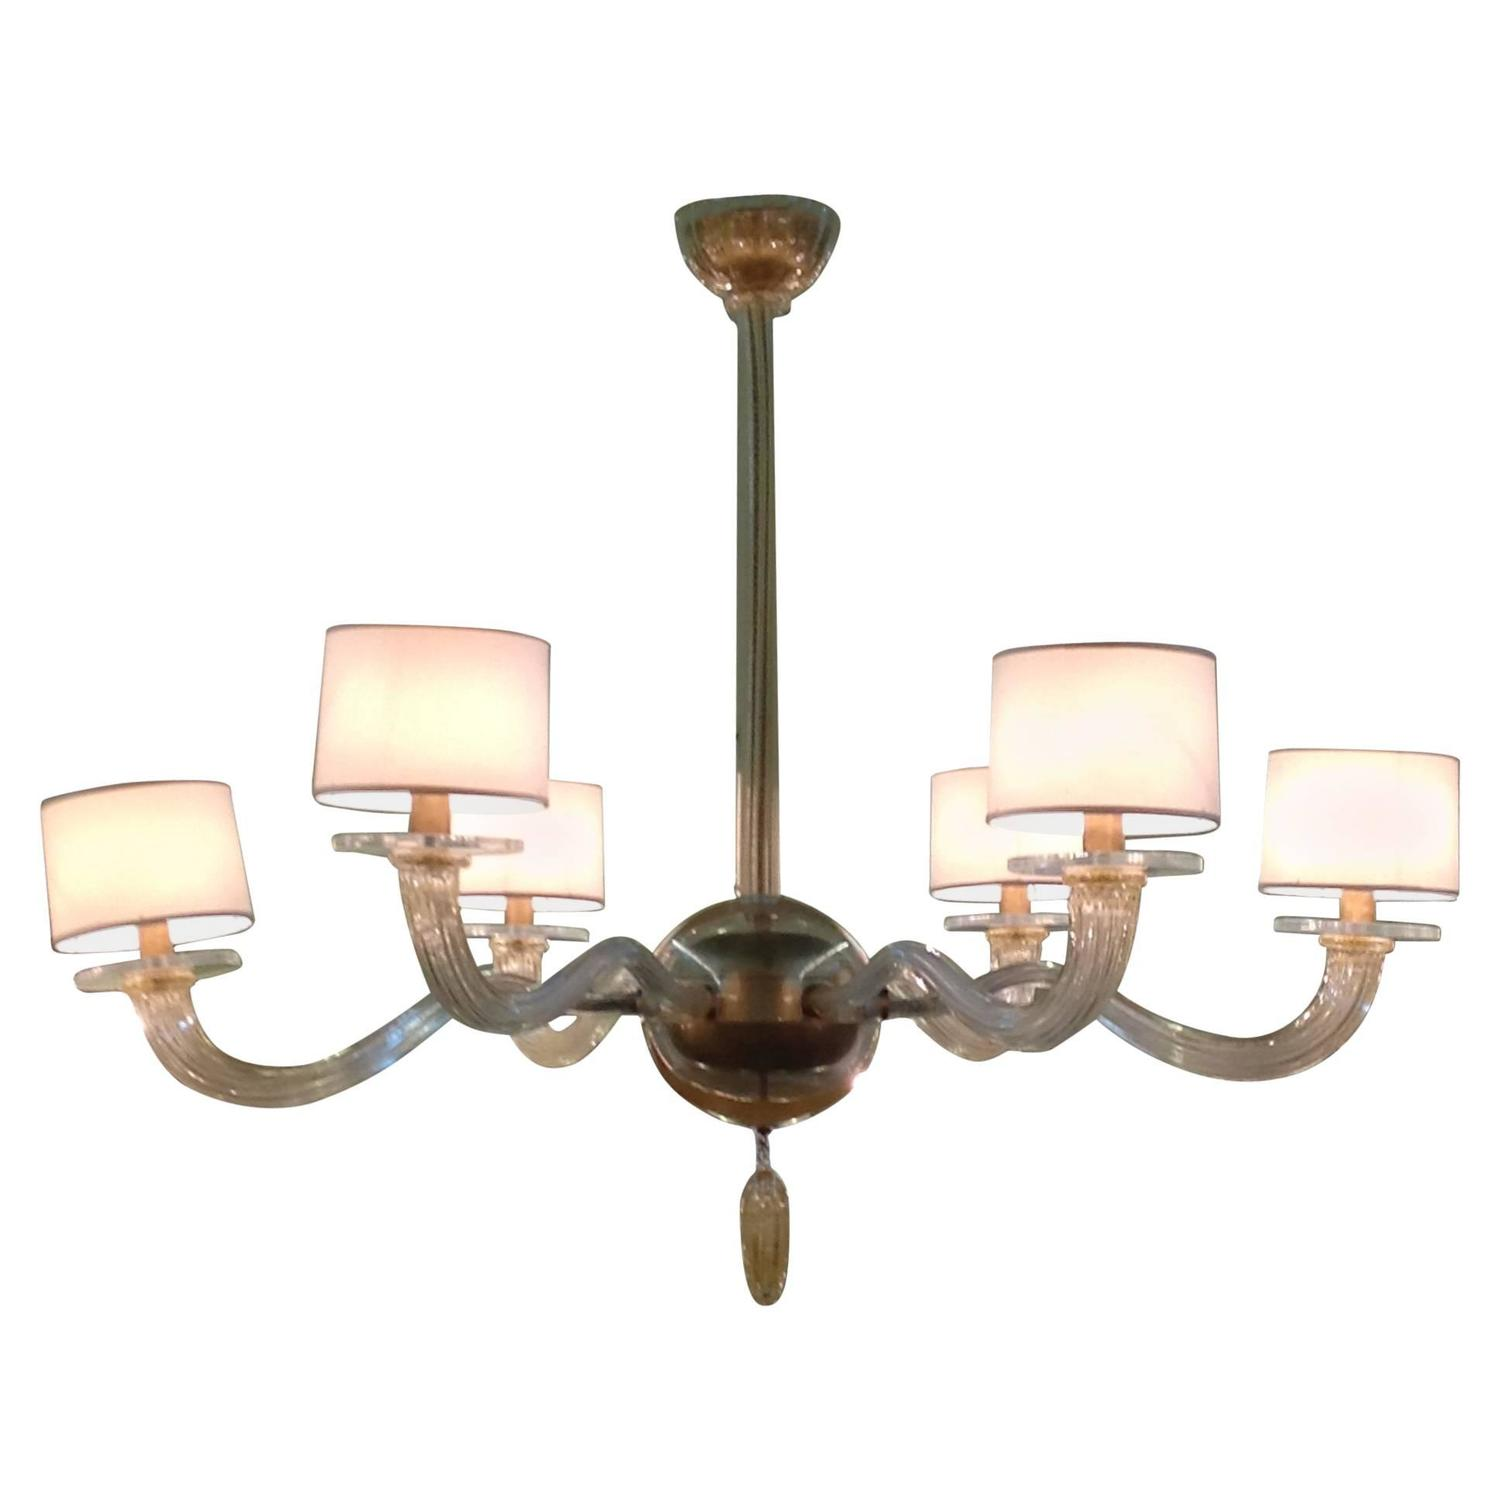 Barbara barry for baker signature six arm murano chandelier at 1stdibs arubaitofo Images